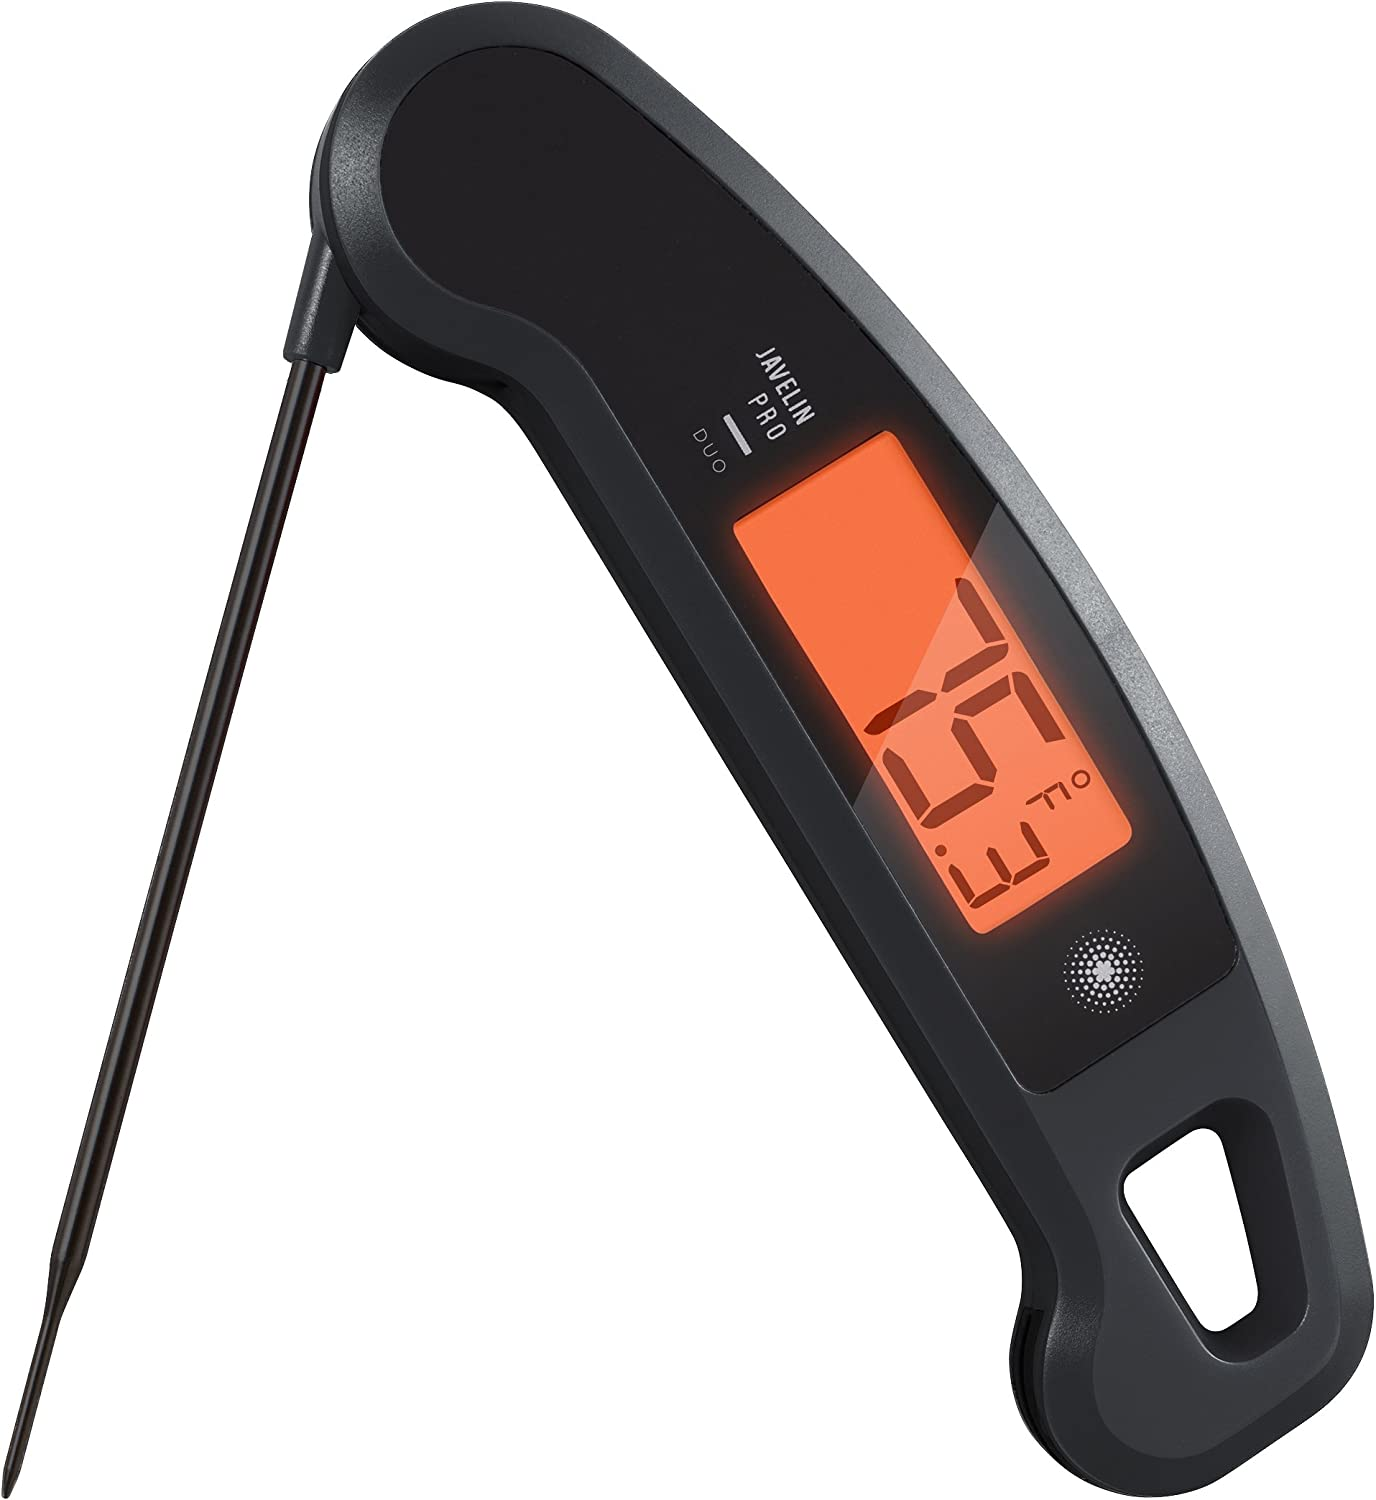 Digital Cooking Food Stab Probe Thermometer Kitchen Meat Temperature Meter PE